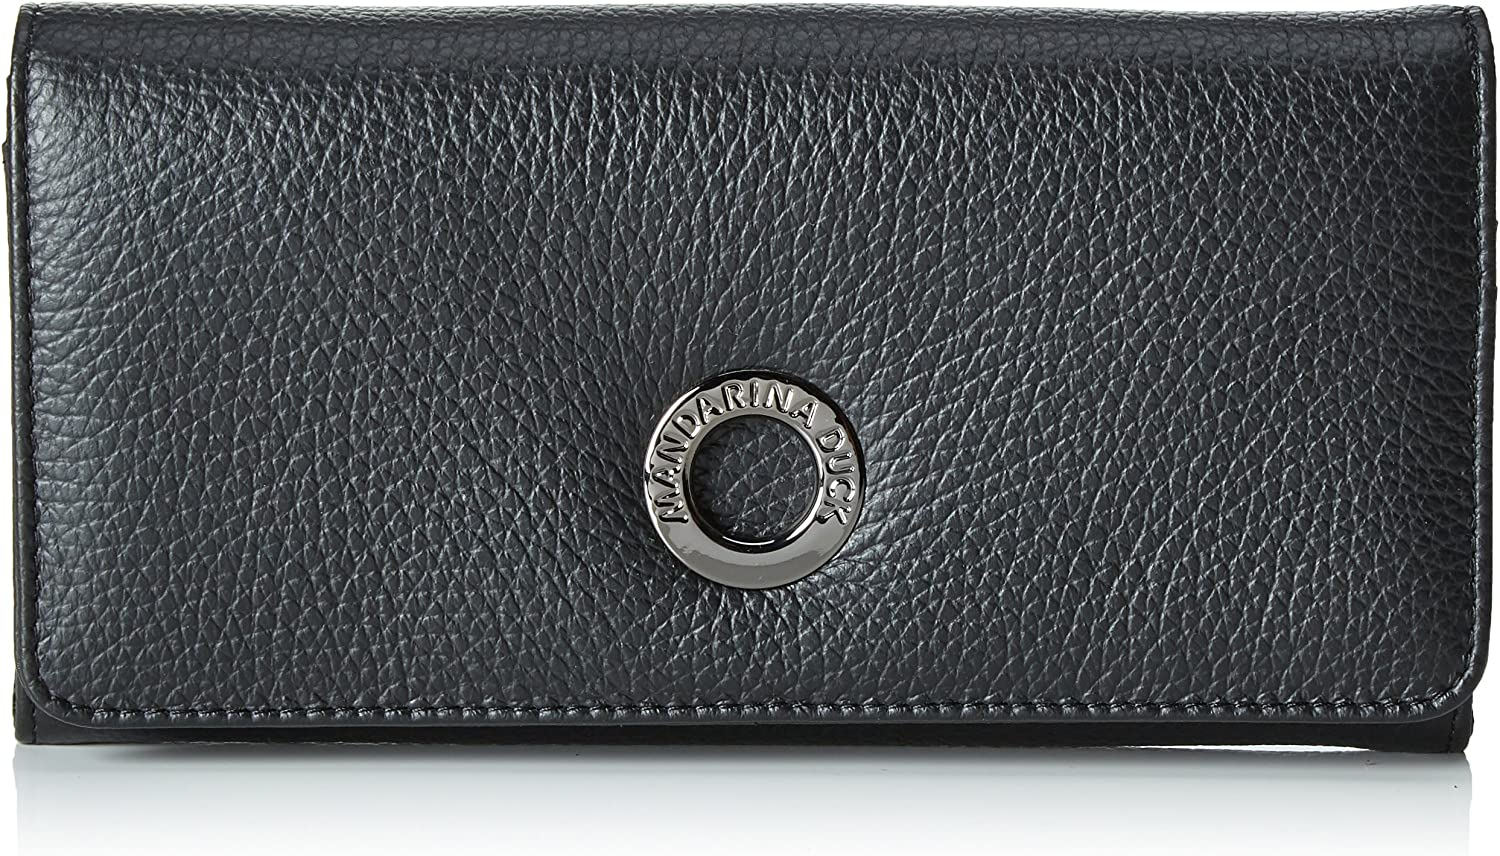 Mandarina Duck Md20, Billetera para Mujer, Negro (Negro/Black), One size